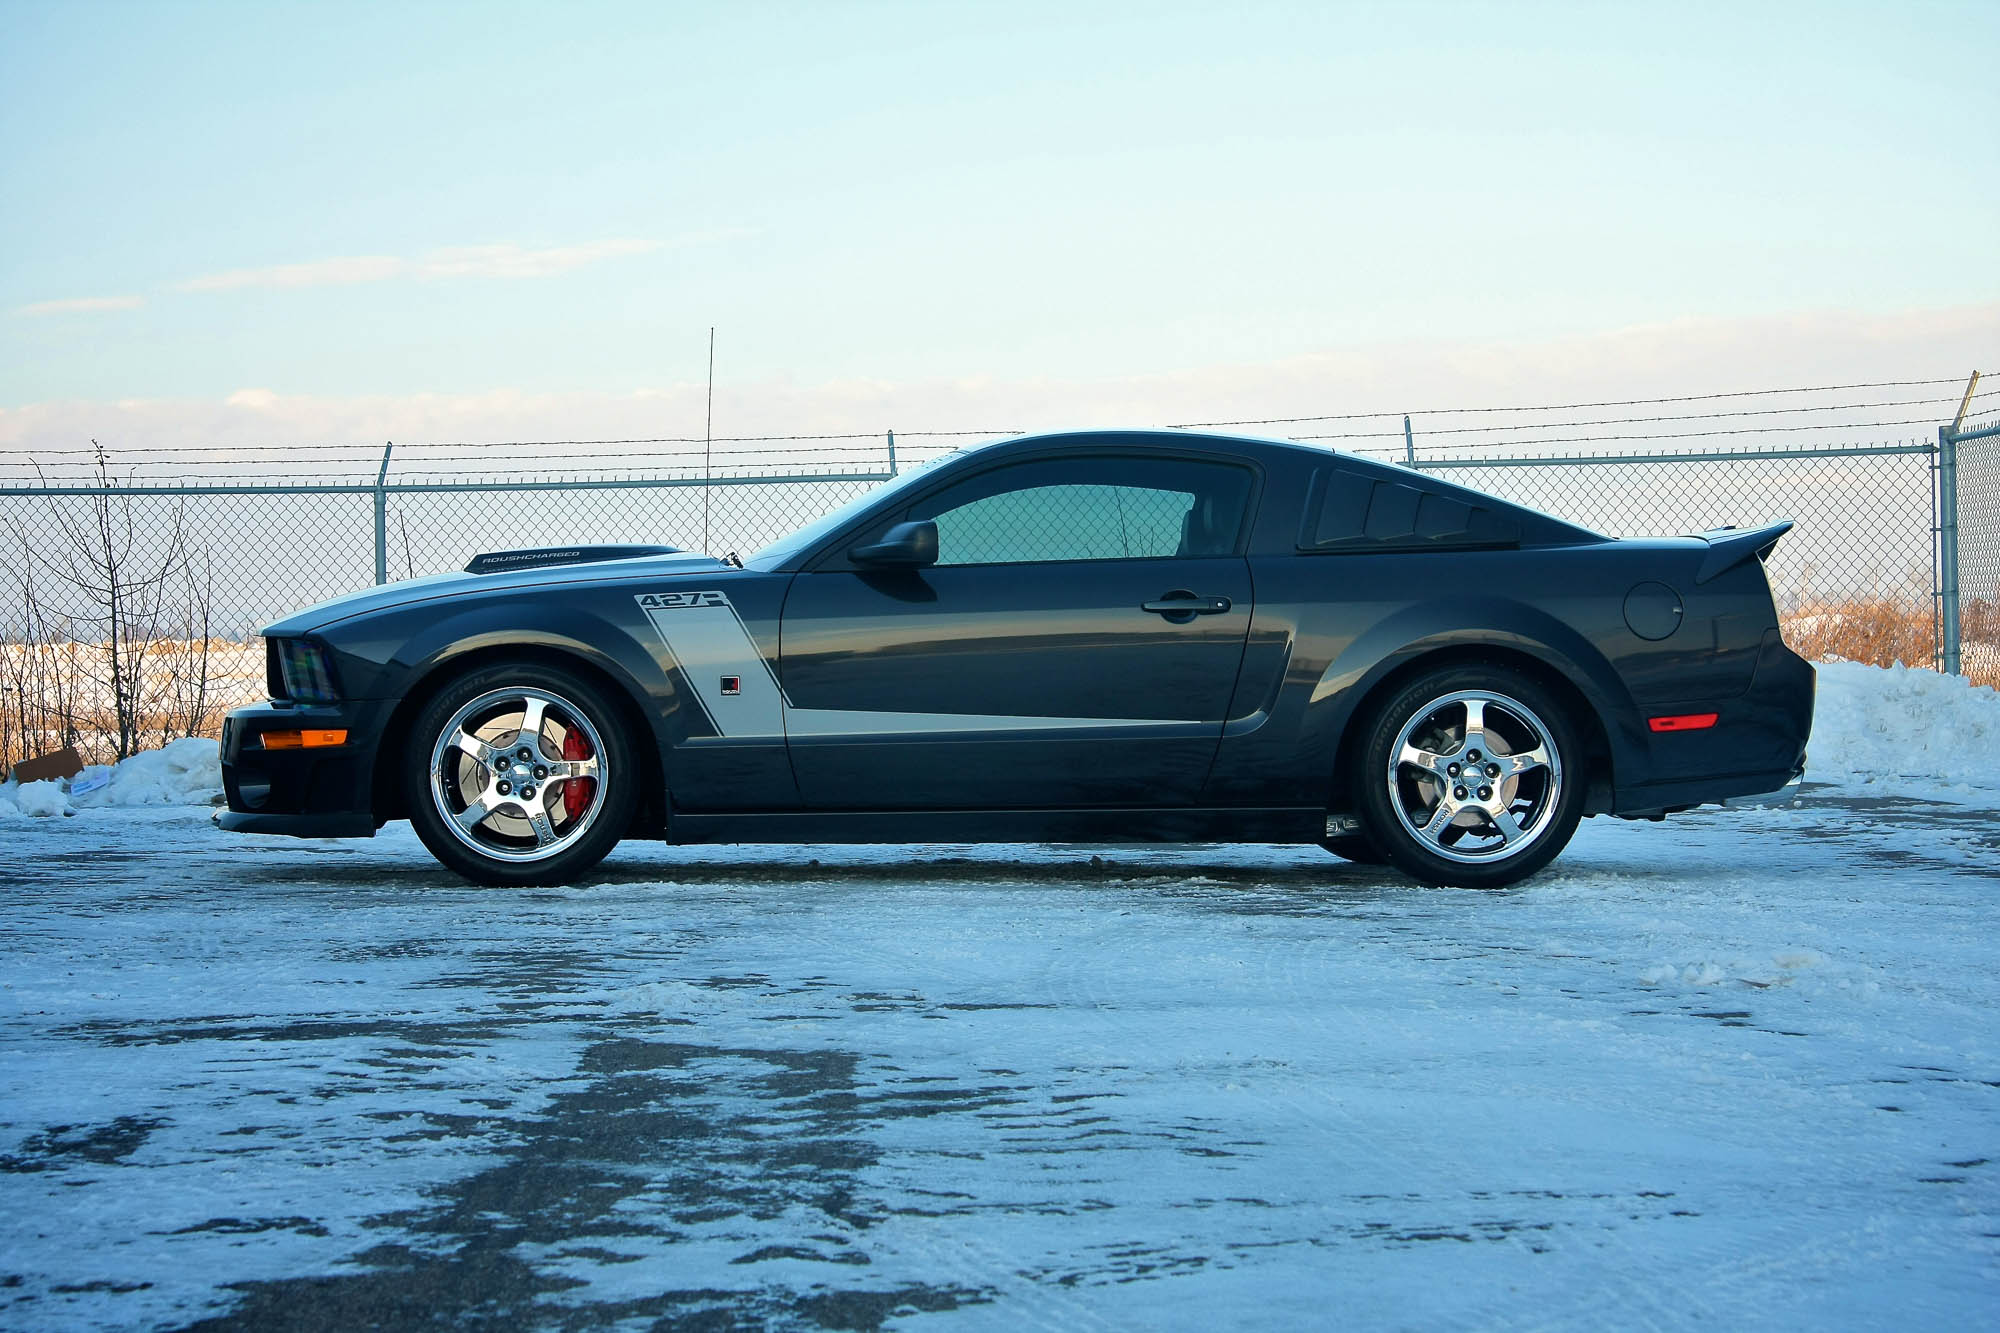 2007 Roush Mustang 427R - Sold - The Iron Garage